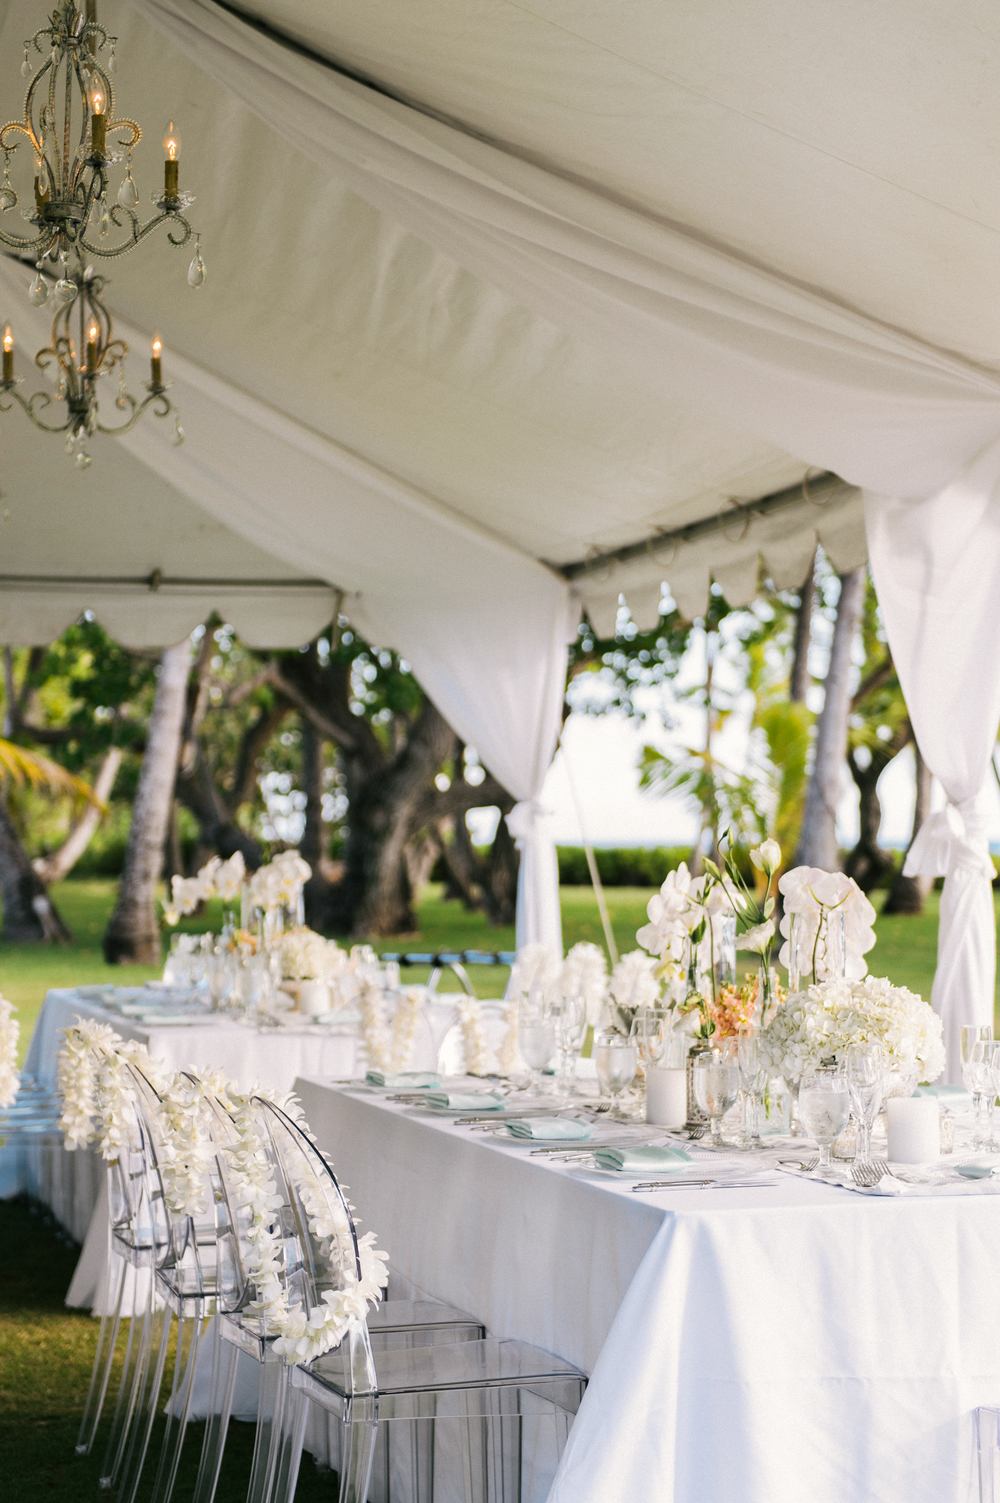 Michelle Garibay Events | Modern Vintage Hawaii Wedding | Oahu Destination Wedding | Peach and Gray Decor | Oceanfront Wedding